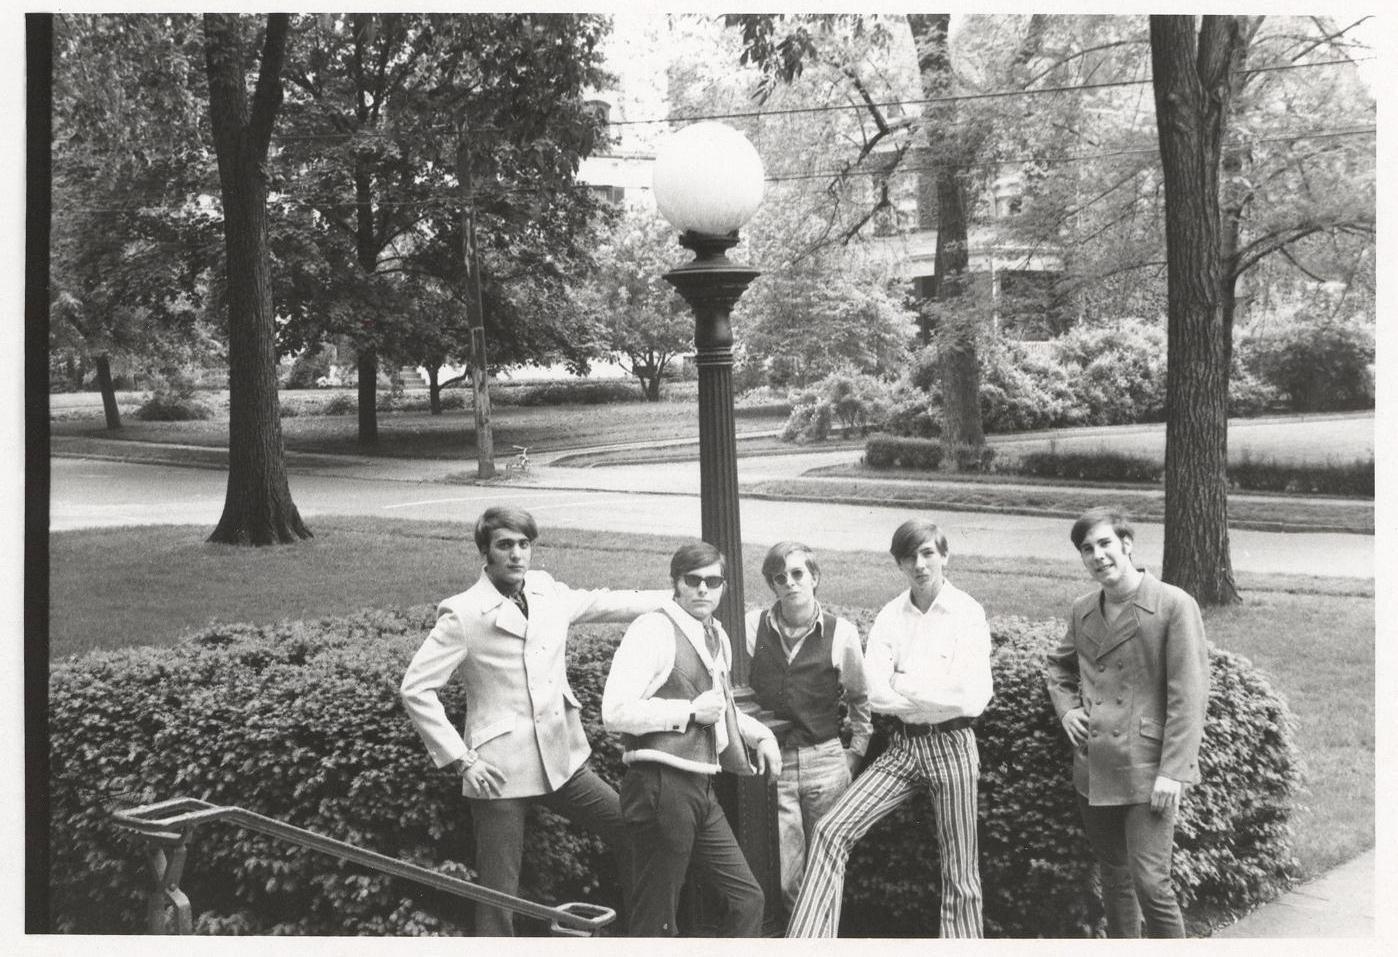 08 - Nobody's Children - Under The Lamp Post - Lloyd, Randy, Tom, Mike & Fritz .jpg